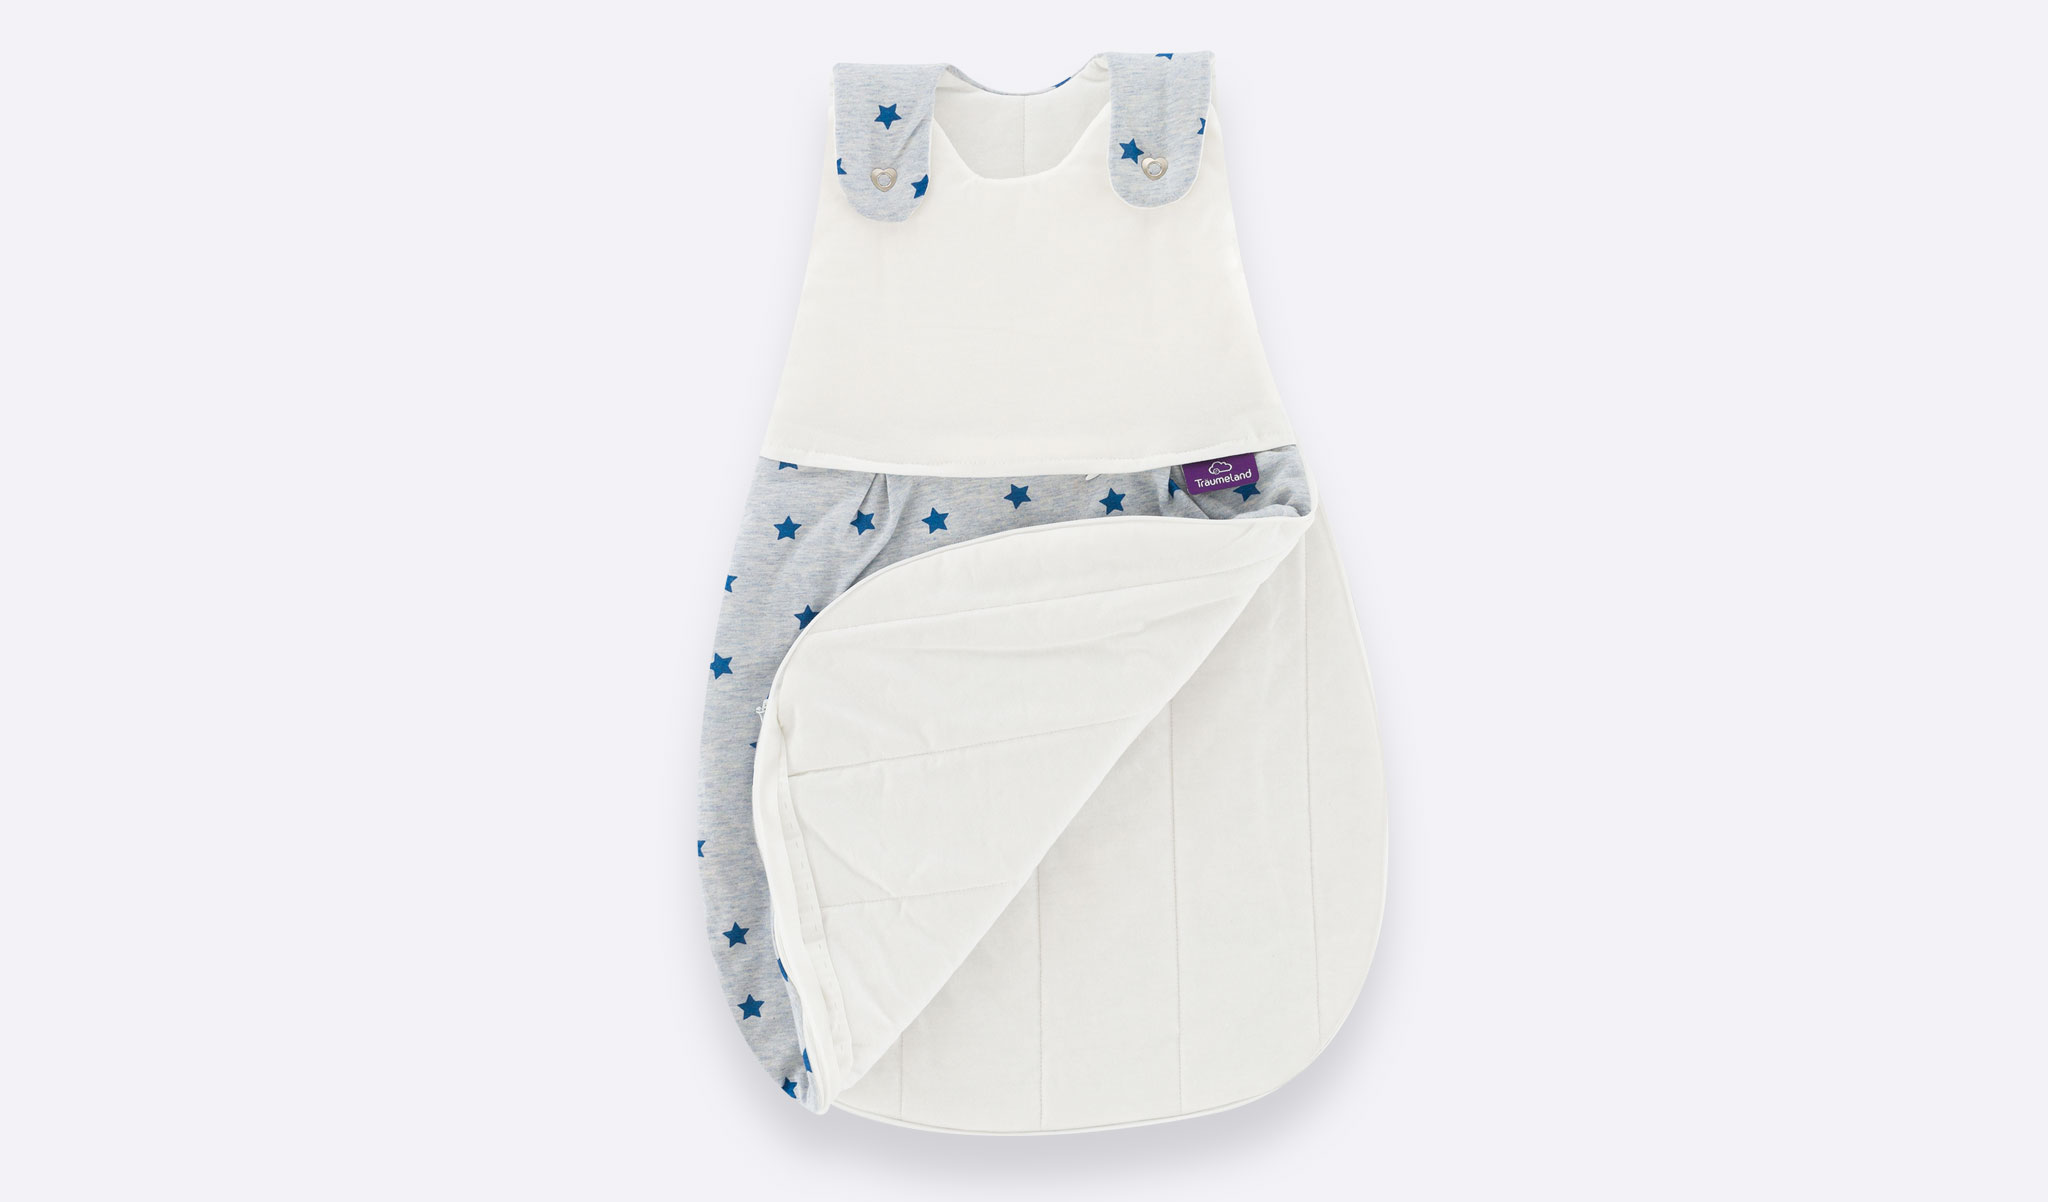 S0103351 - sleeping bag set dream of stars blue